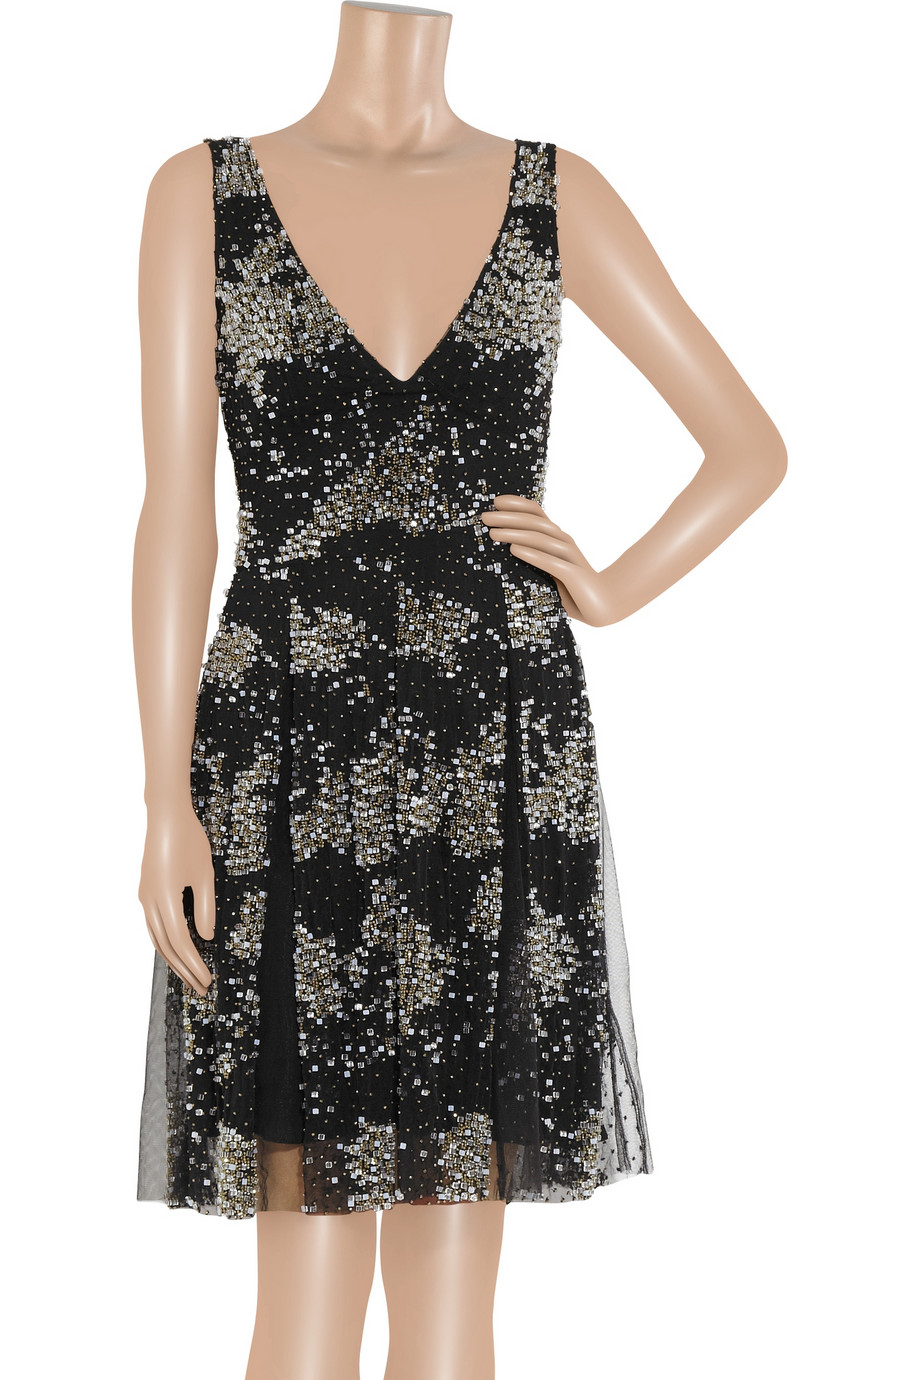 Issa Beaded Georgette Dress In Black Lyst